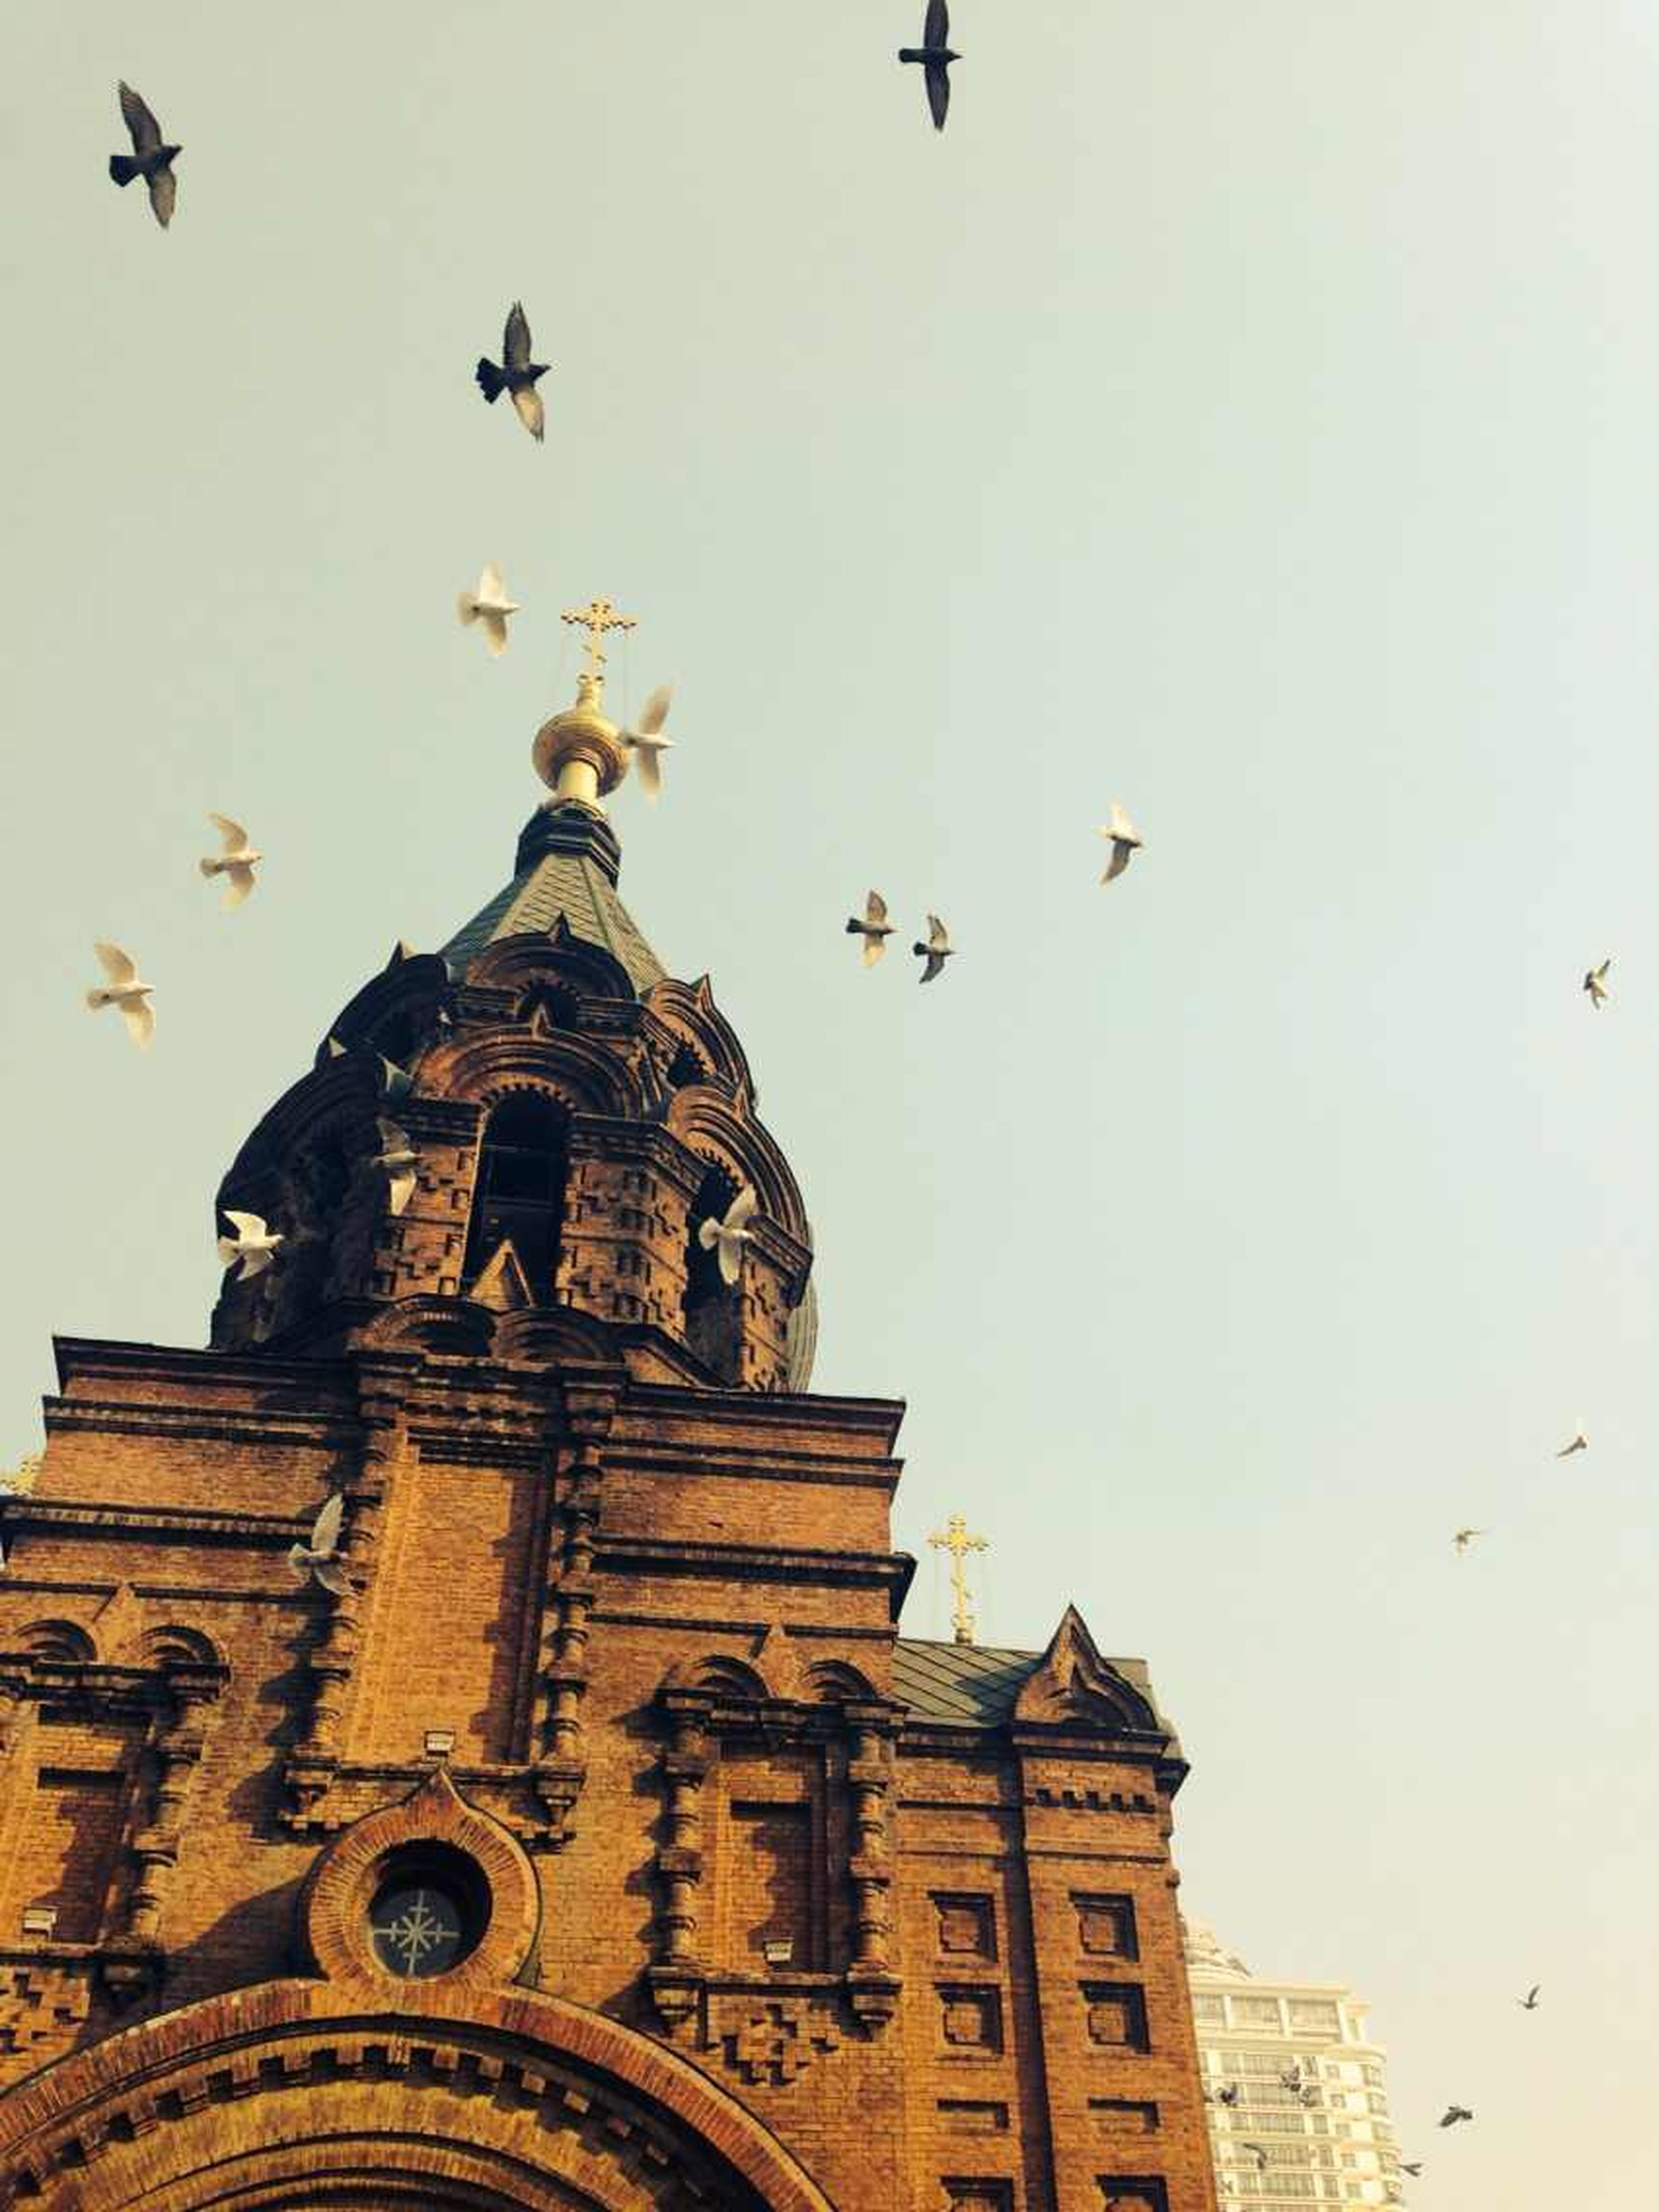 bird, low angle view, architecture, building exterior, flying, animals in the wild, built structure, animal themes, wildlife, religion, place of worship, clear sky, church, spirituality, history, dome, sky, flock of birds